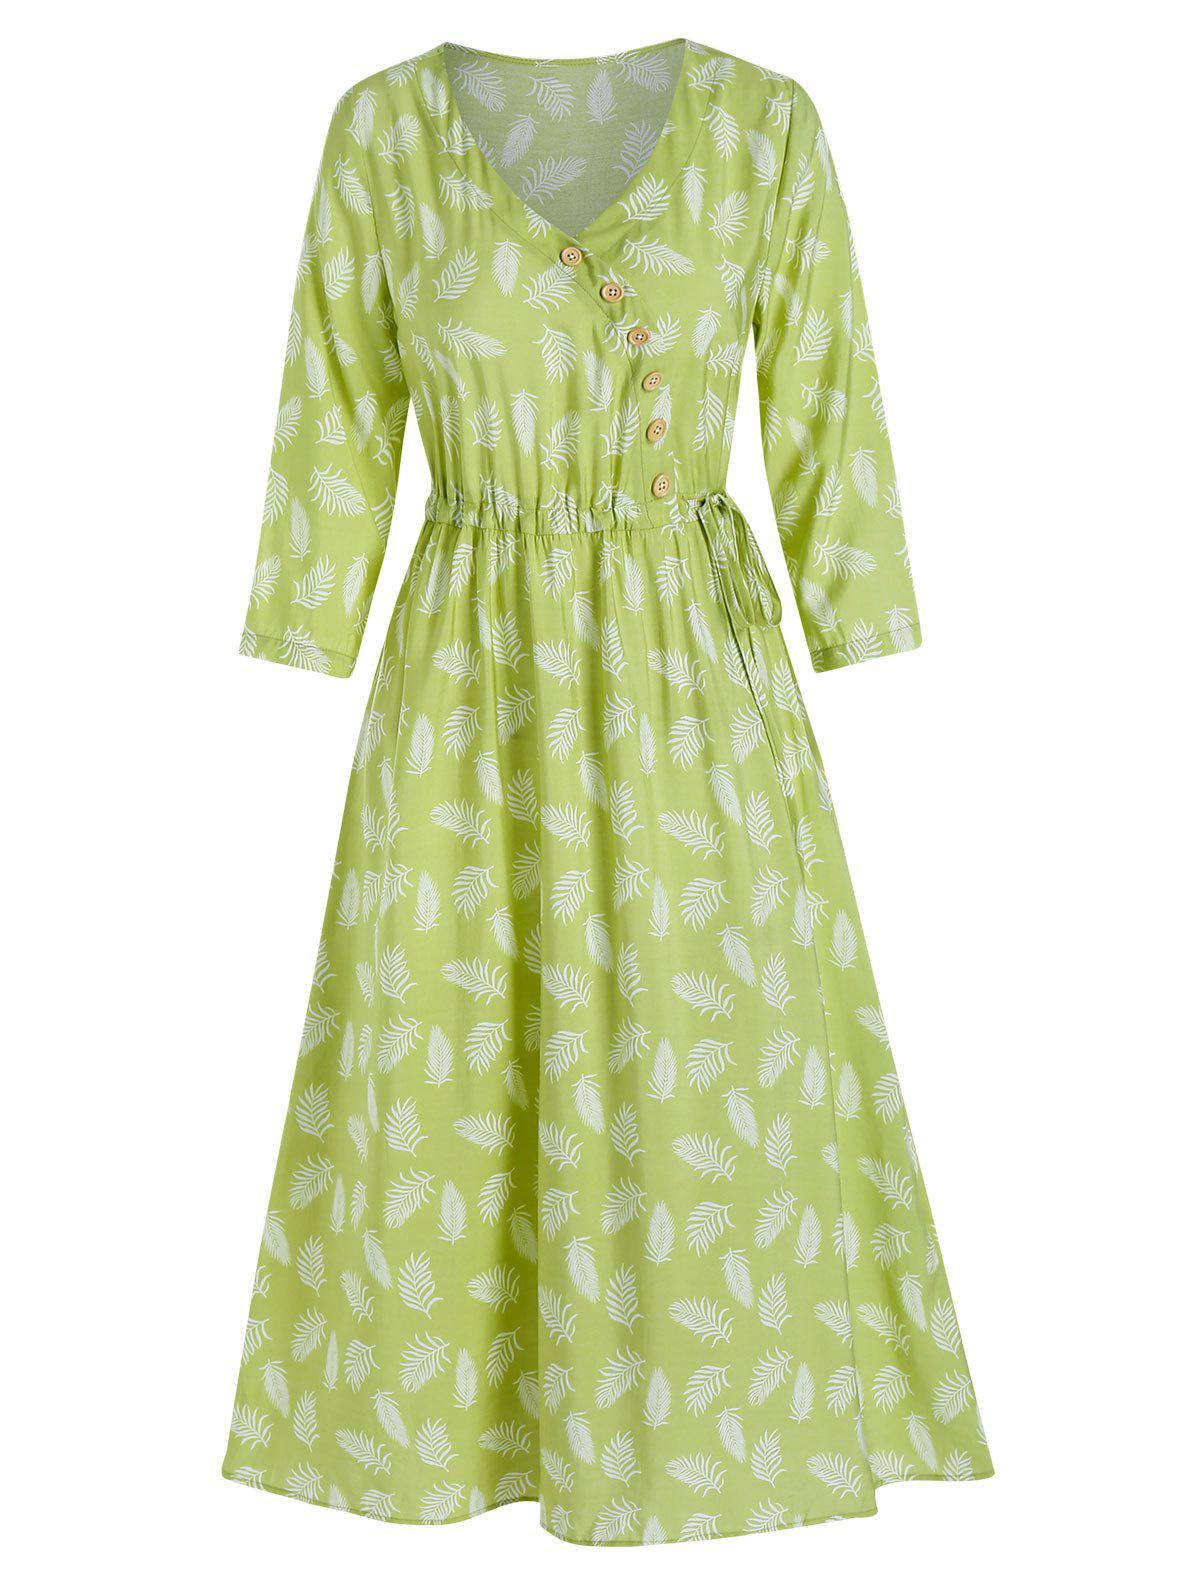 Feather Pattern Buttons Drawstring A Line Dress - AVOCADO GREEN M